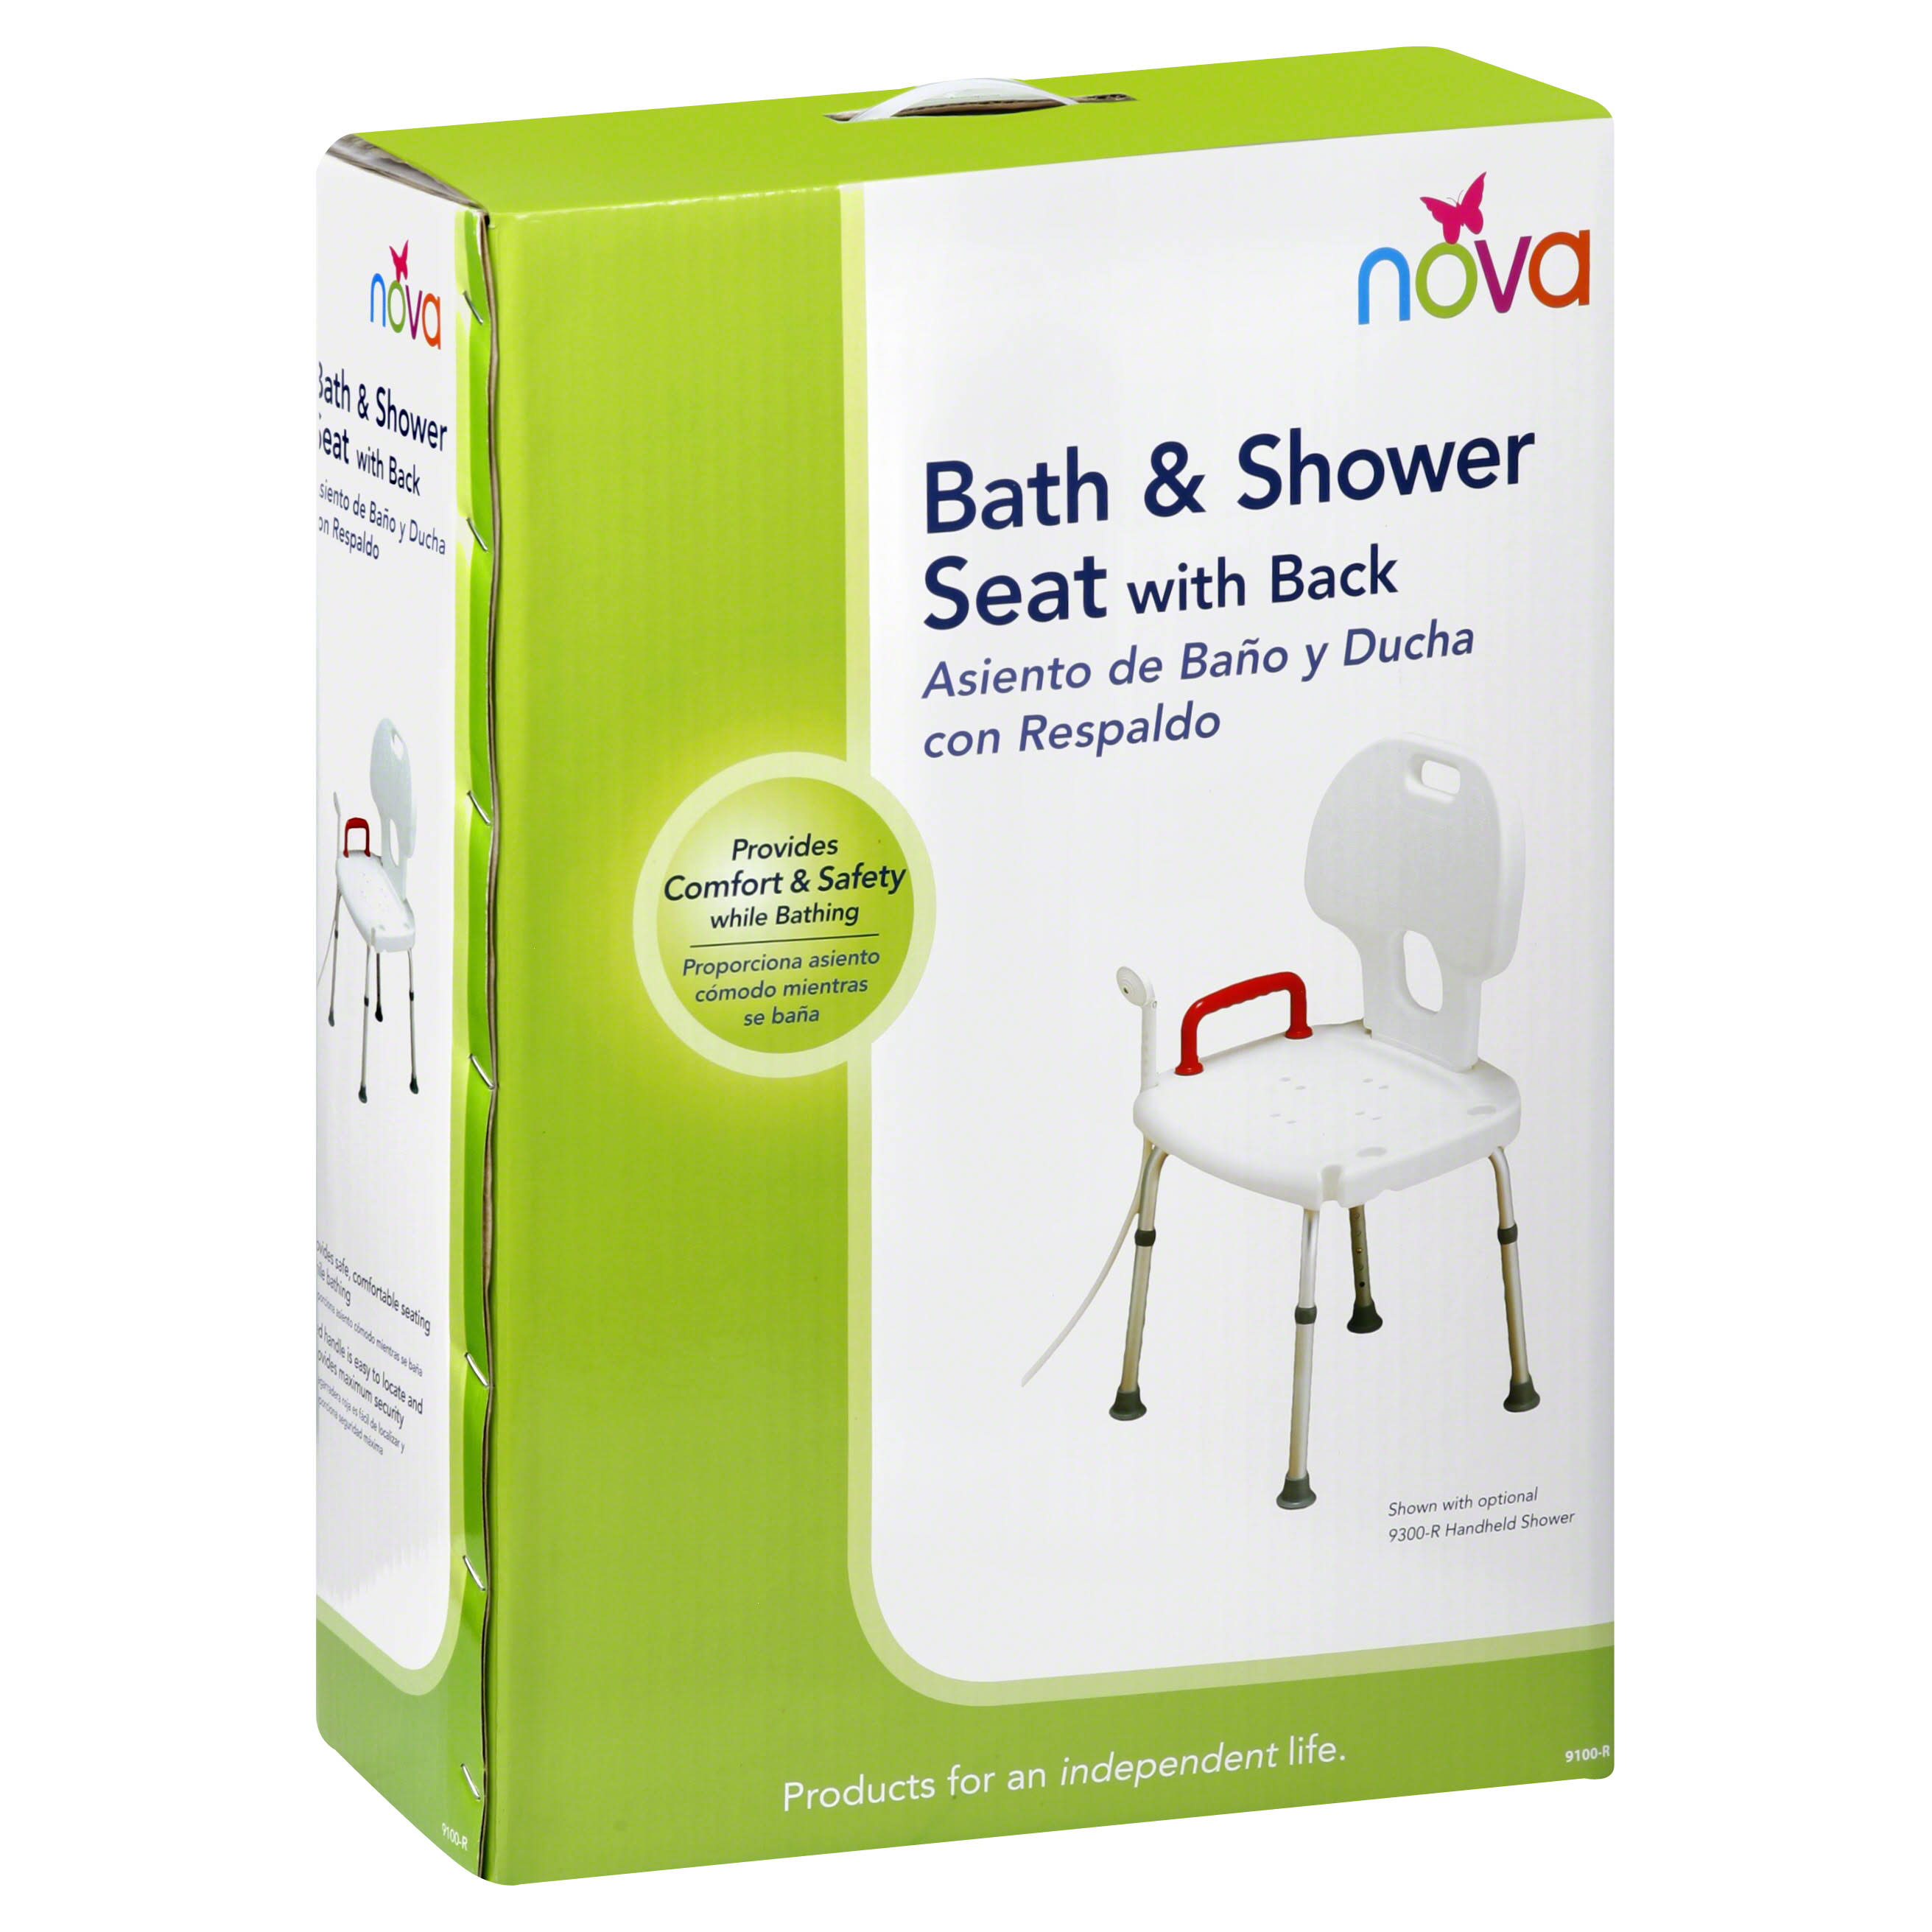 Nova Bath And Shower Seat - with Back